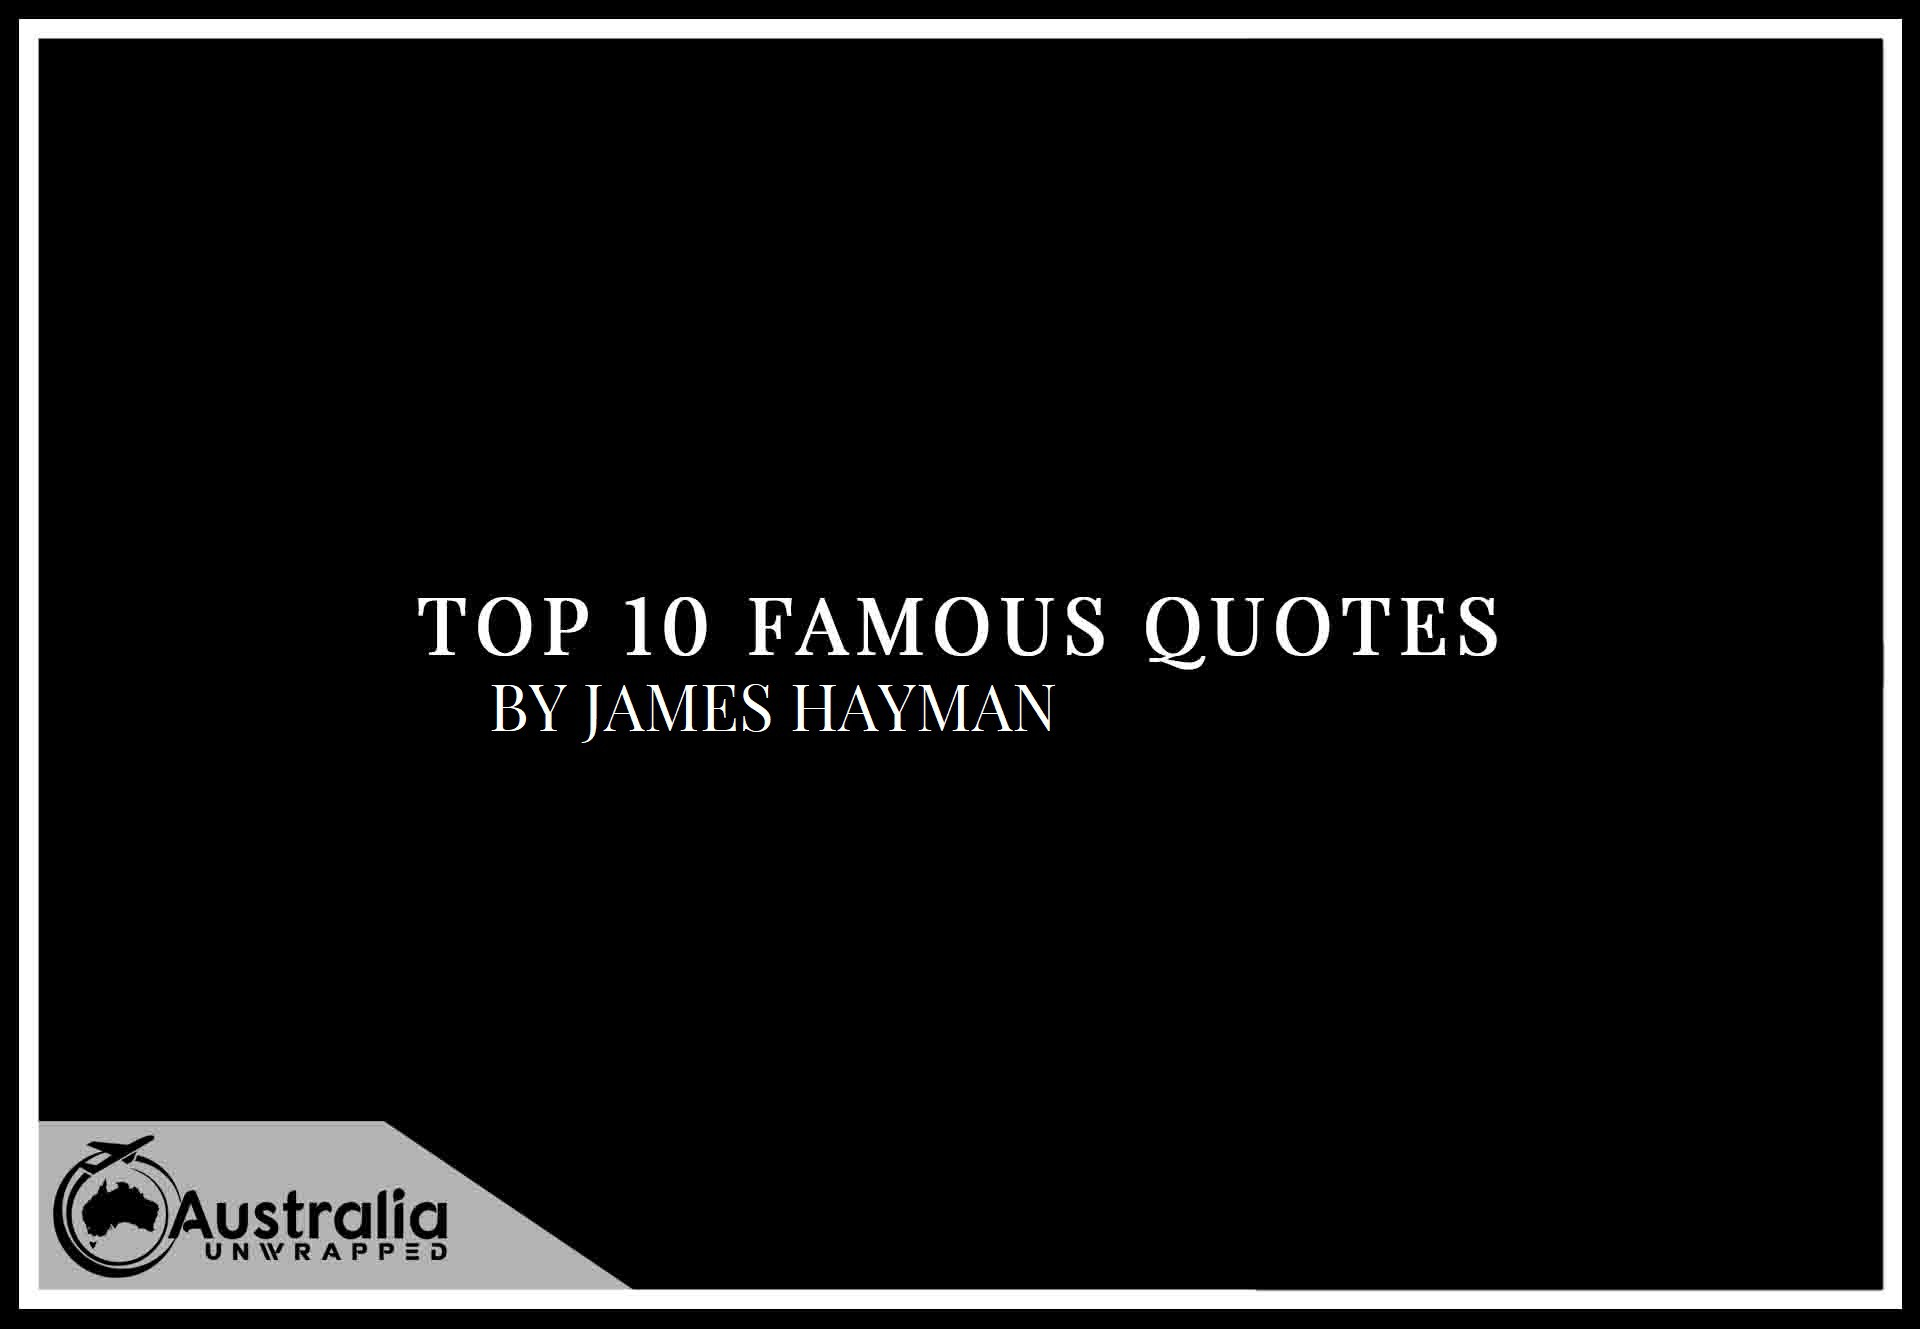 Top 10 Famous Quotes by Author James Hayman